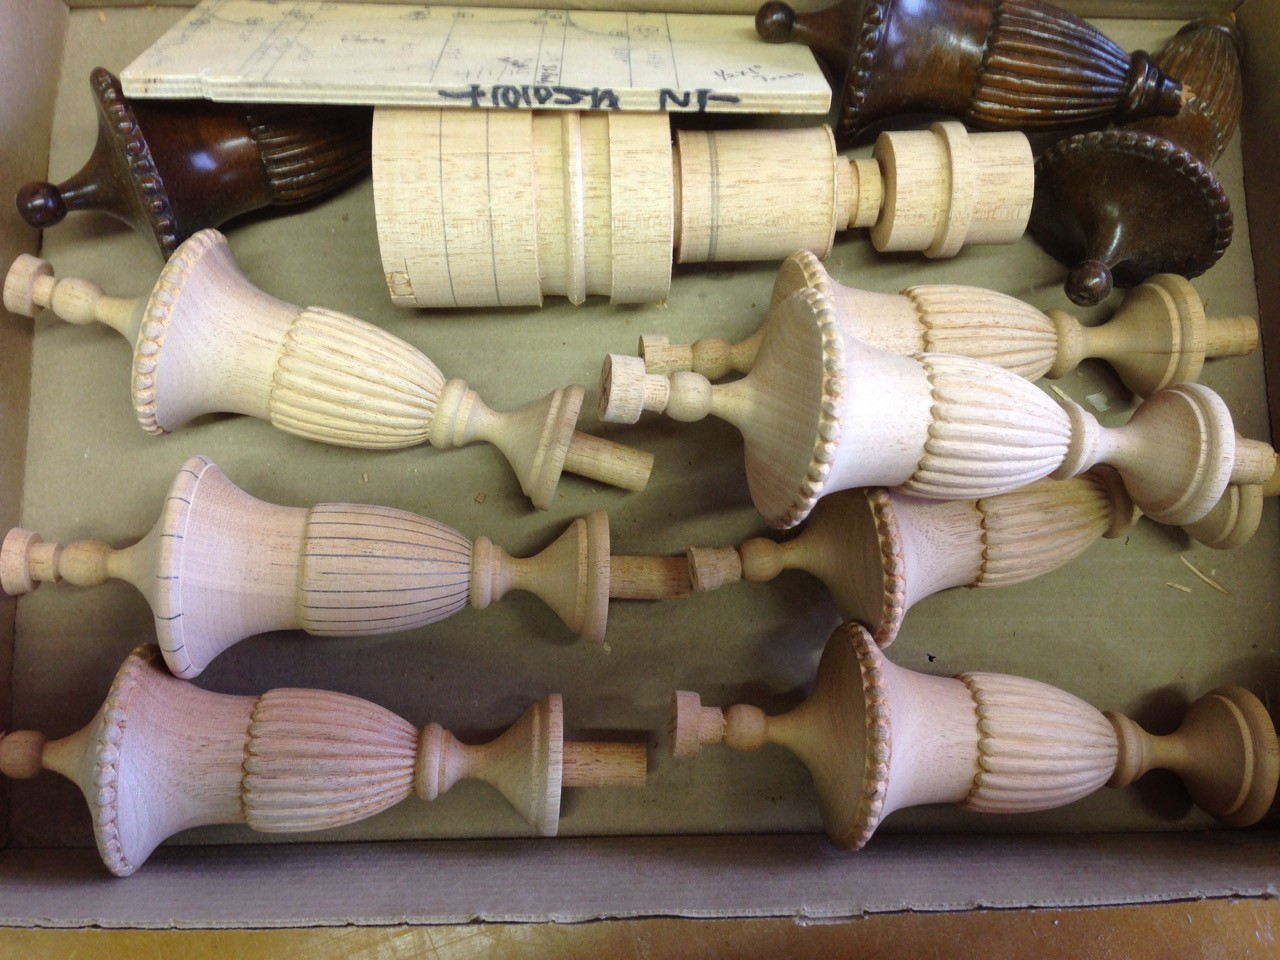 Finials for furniture piece, broken original pieces as well as work-in-process and new replacements ready for finishing.